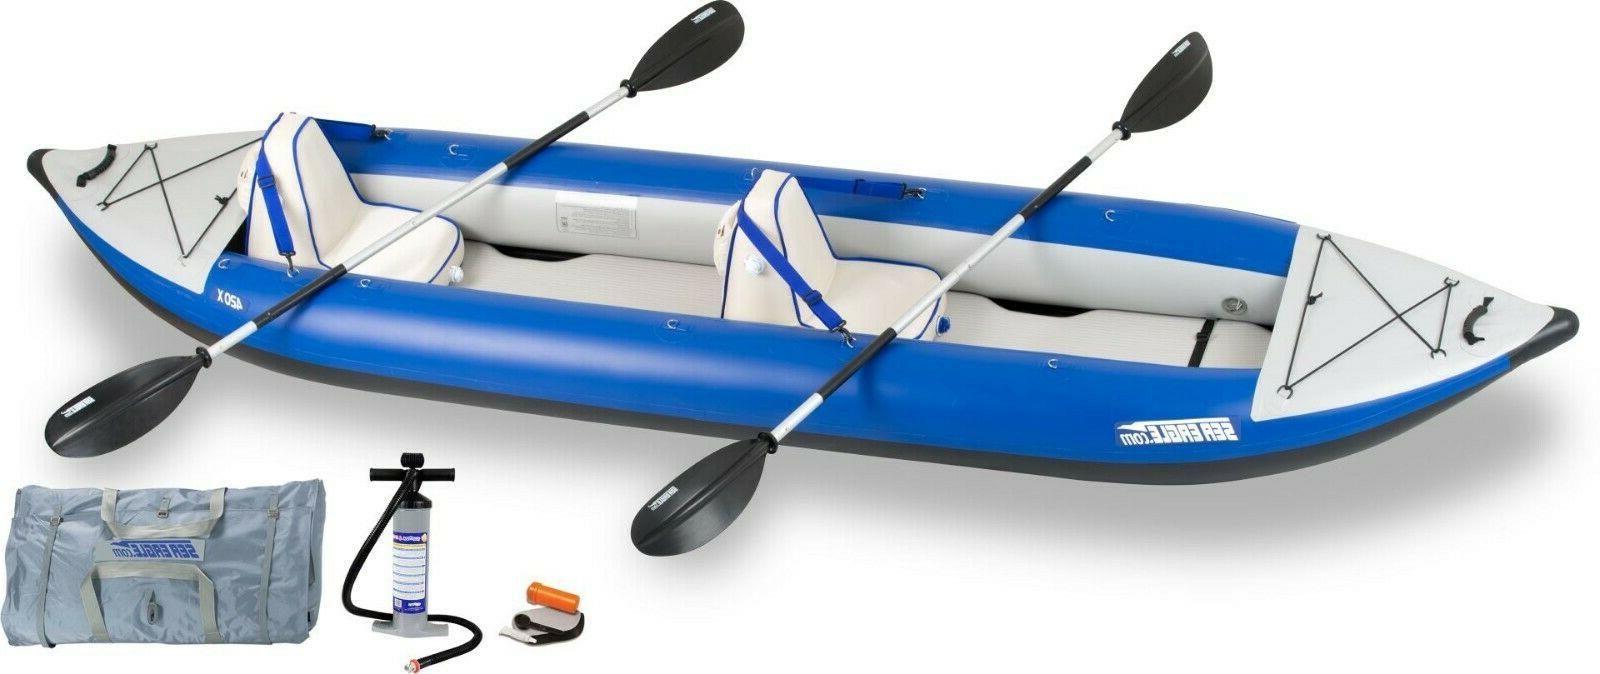 SEA EAGLE 420X DELUXE EXPLORER PACKAGE INFLATABLE KAYAK - PA